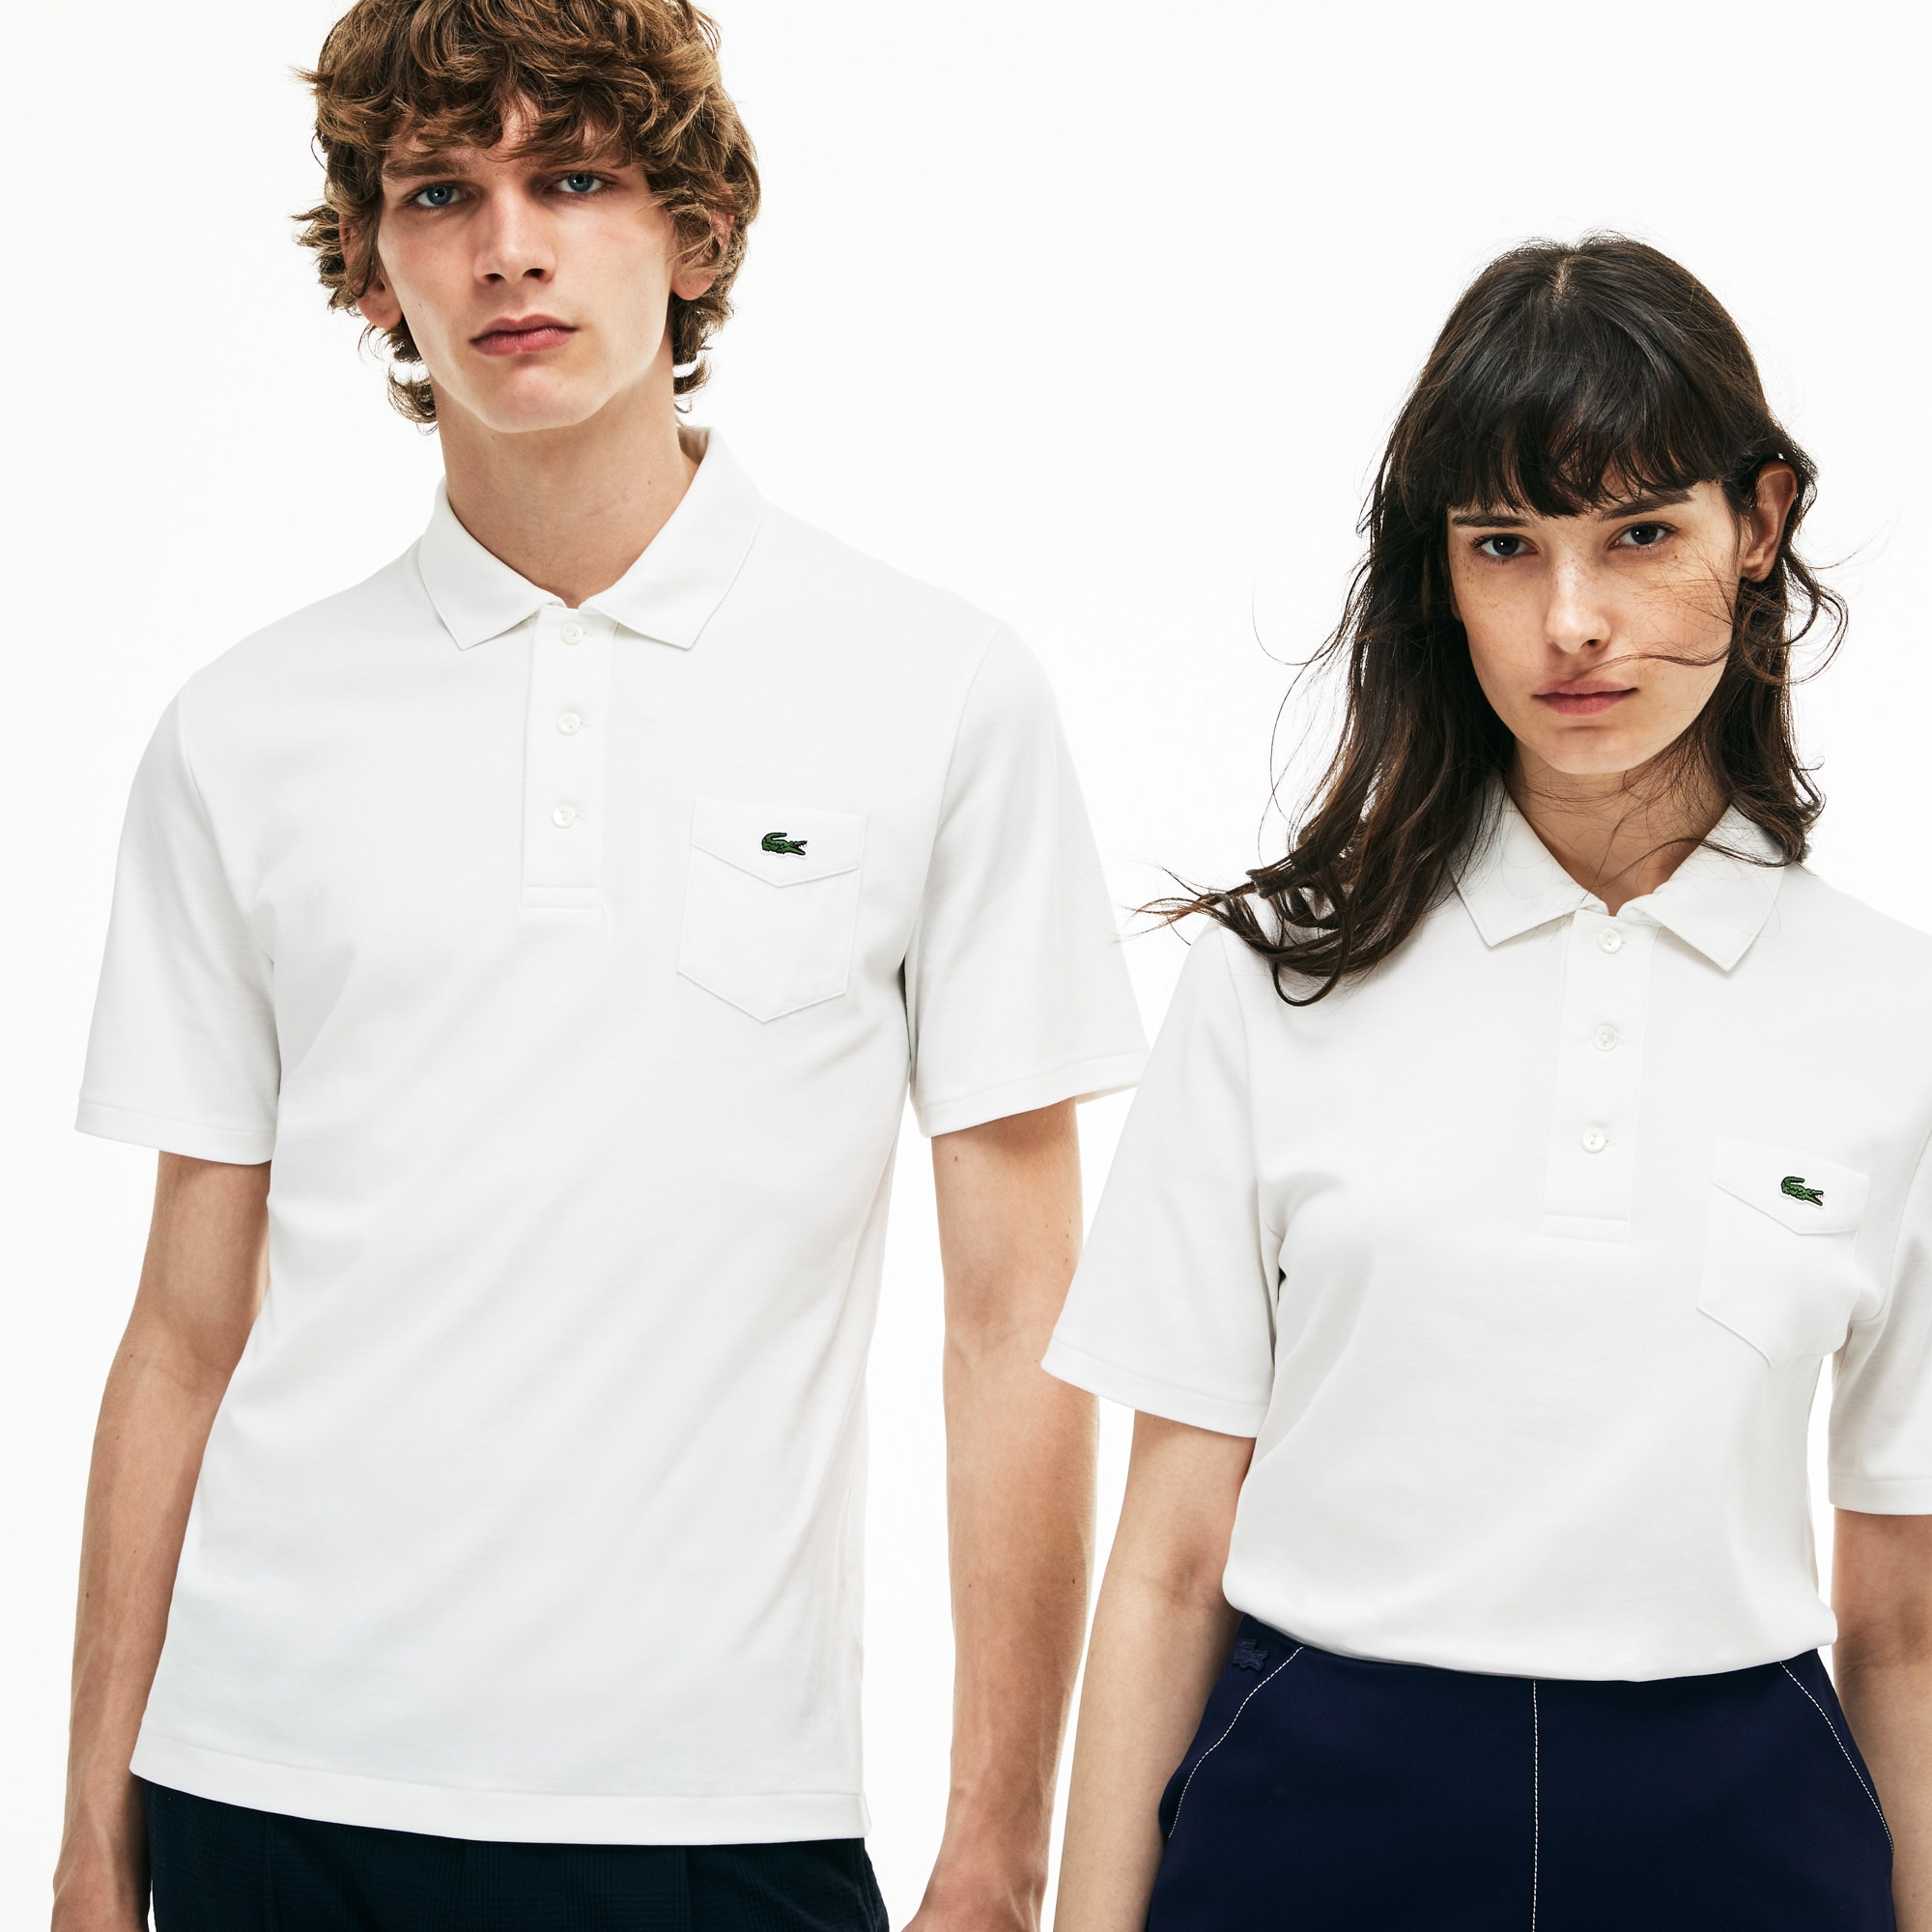 Unisex slim fit Lacoste polo, limited edition 85-jarig jubileum